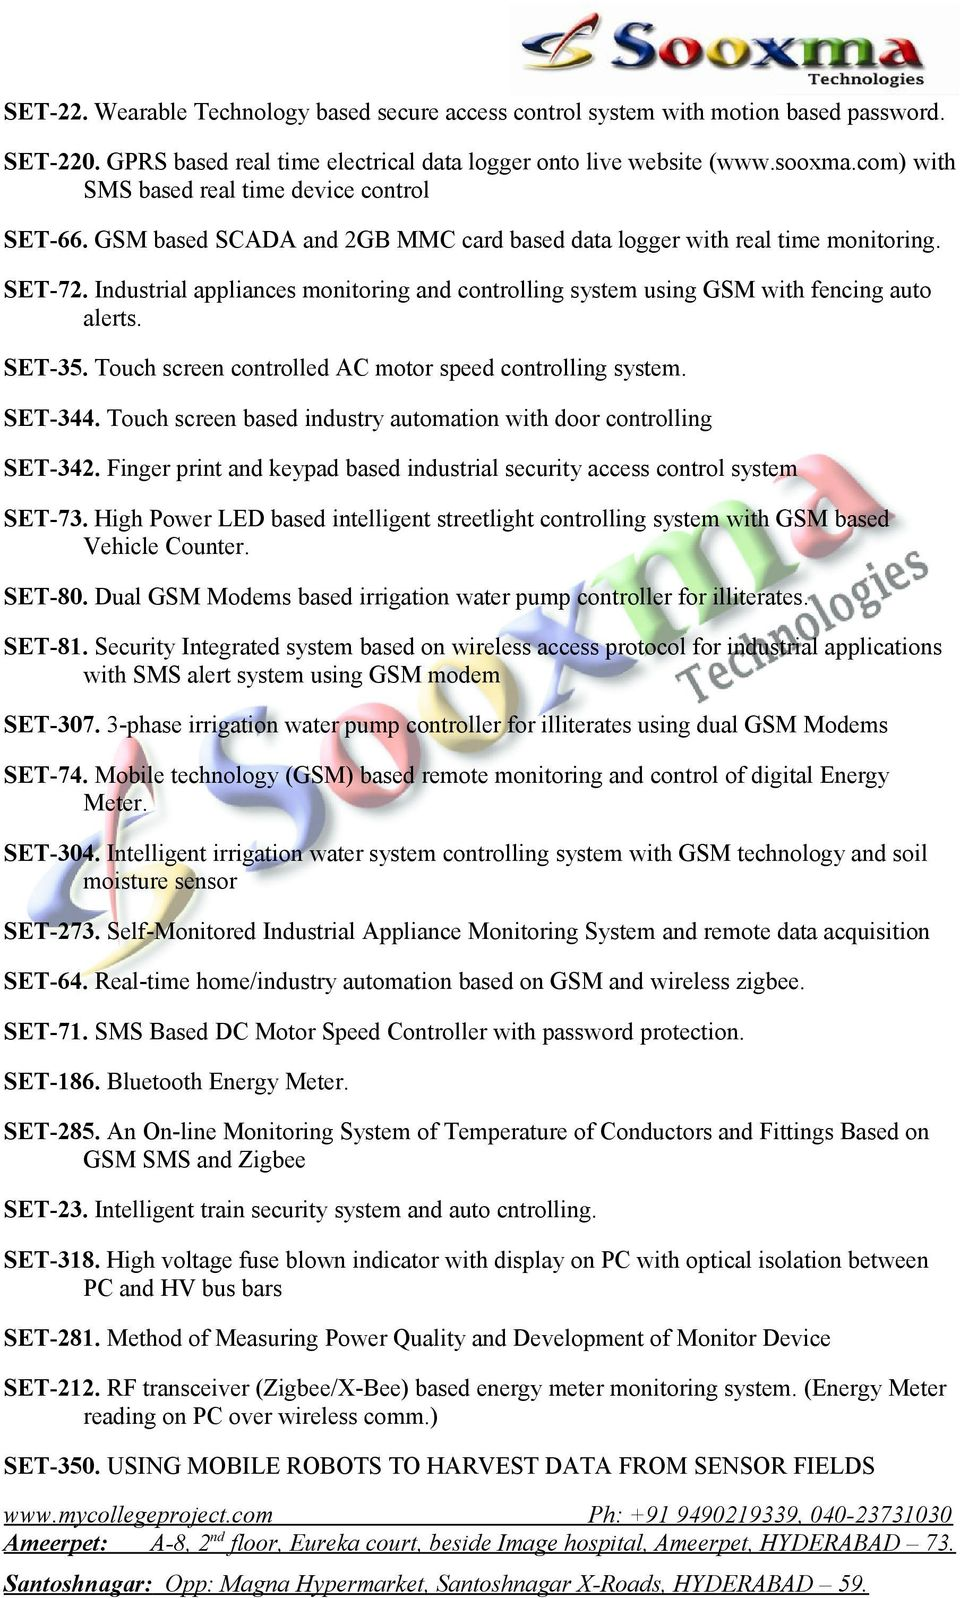 Innovative Eee Final Projects List Pdf Devices And Control Eg Interfacing With Gsm Modem Controlling Industrial Appliances Monitoring System Using Fencing Auto Alerts Set 35